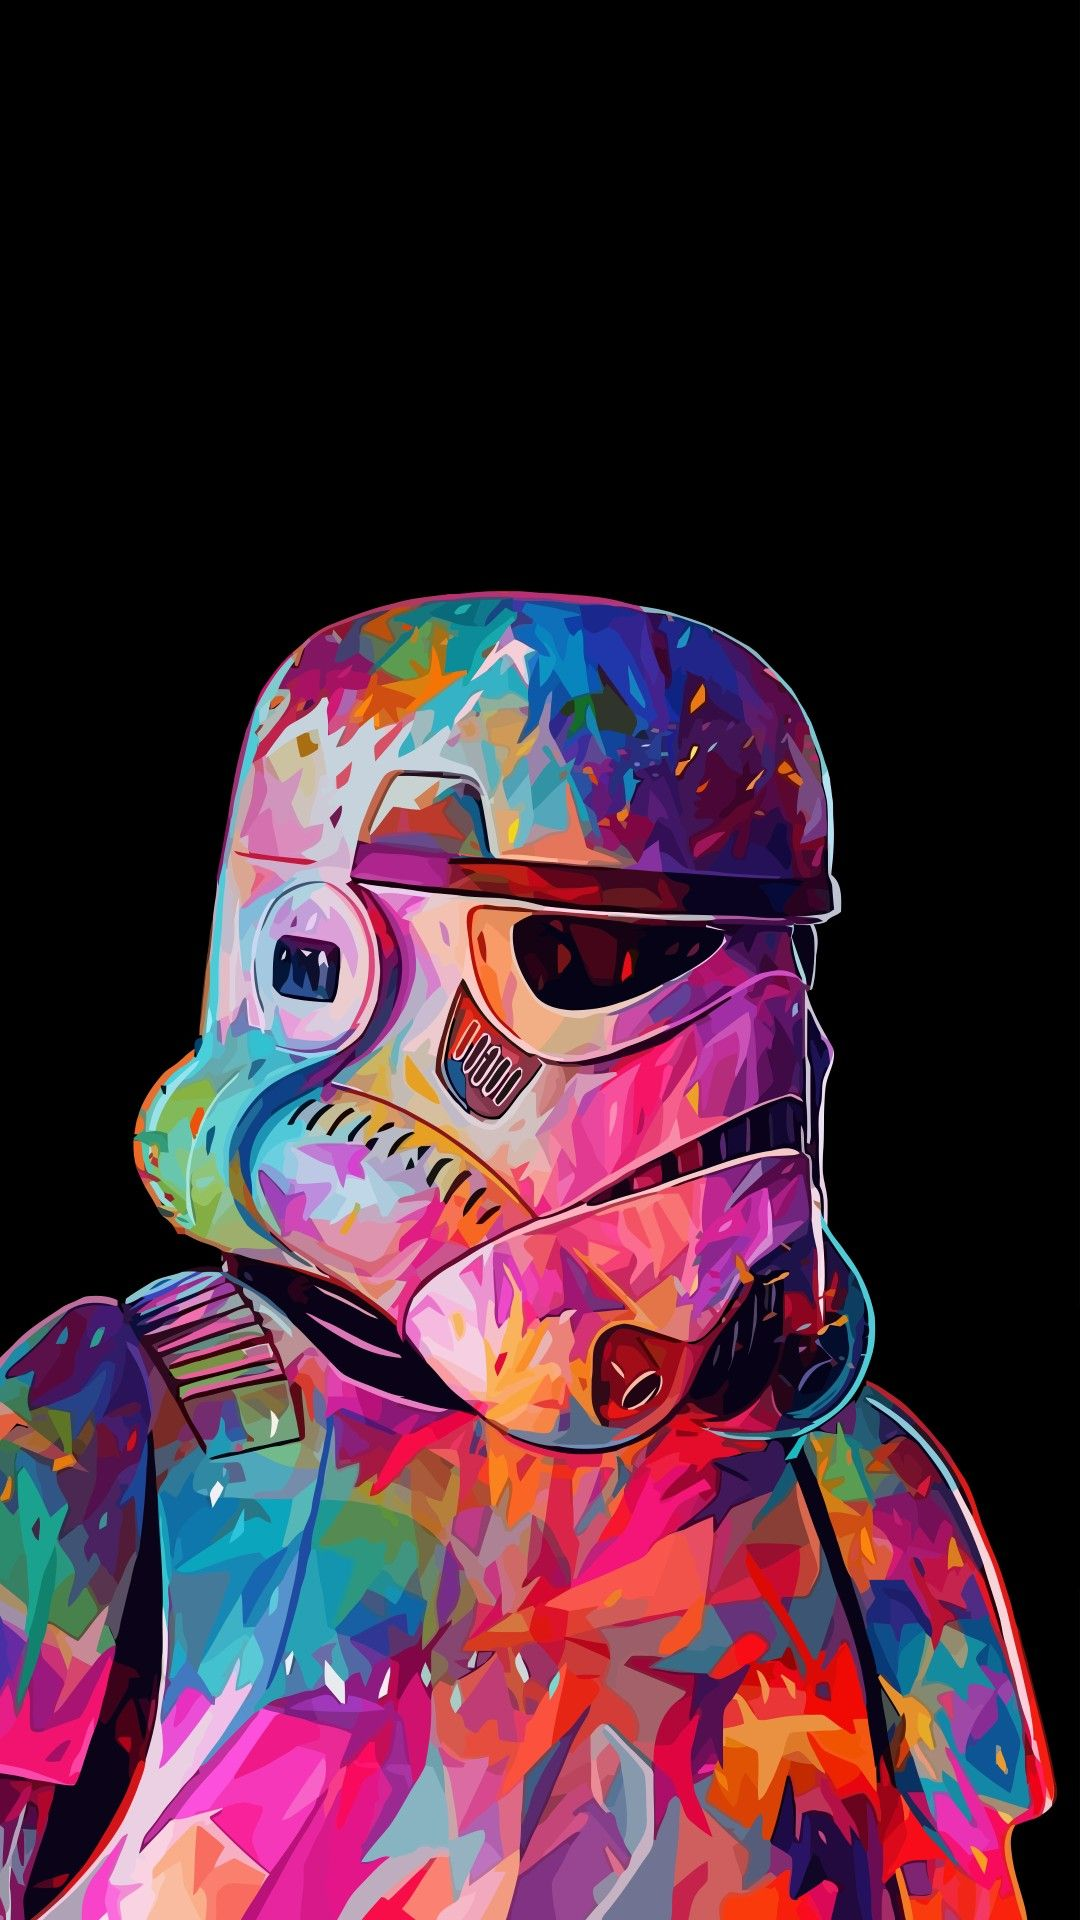 Star Wars Amoled In 2020 Star Wars Painting Star Wars Art Star Wars Fan Art